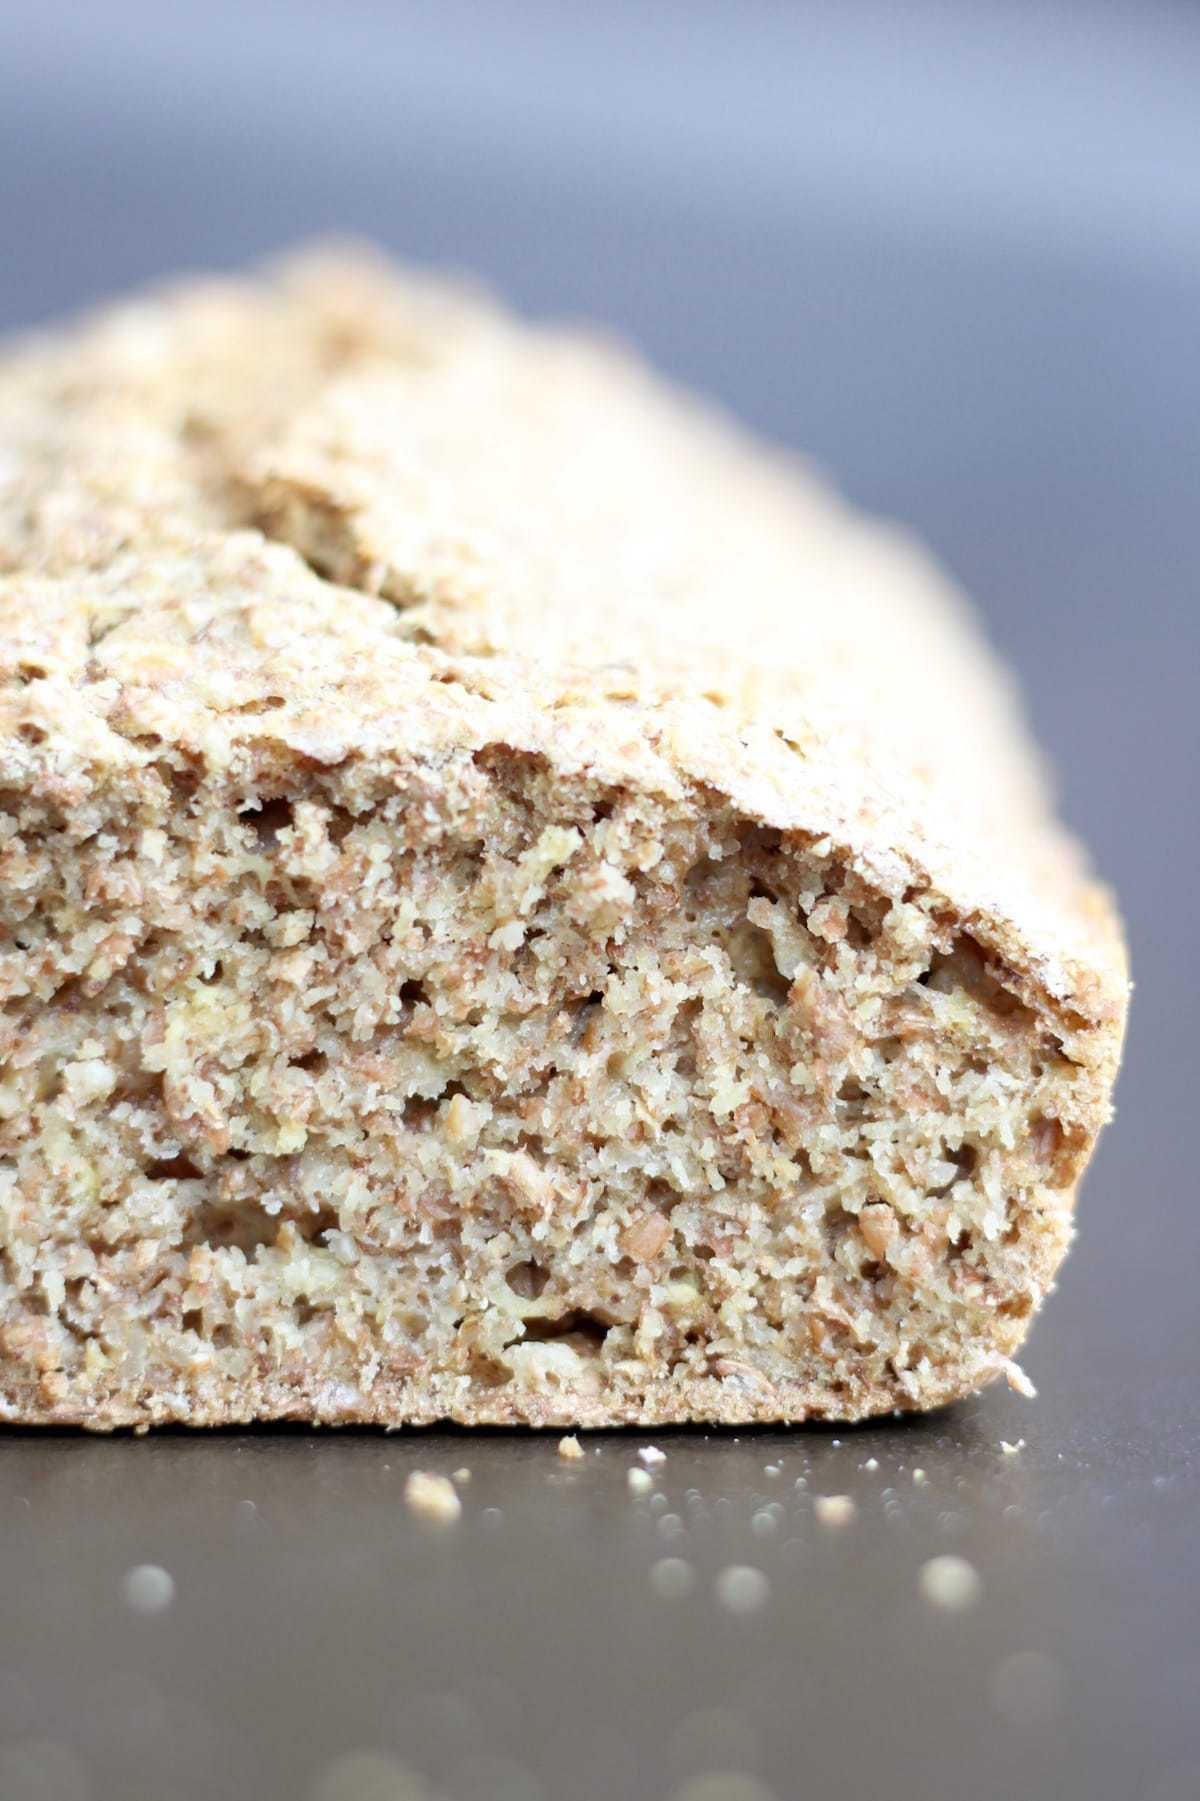 The doughy insides of dairy free traditional Irish brown bread